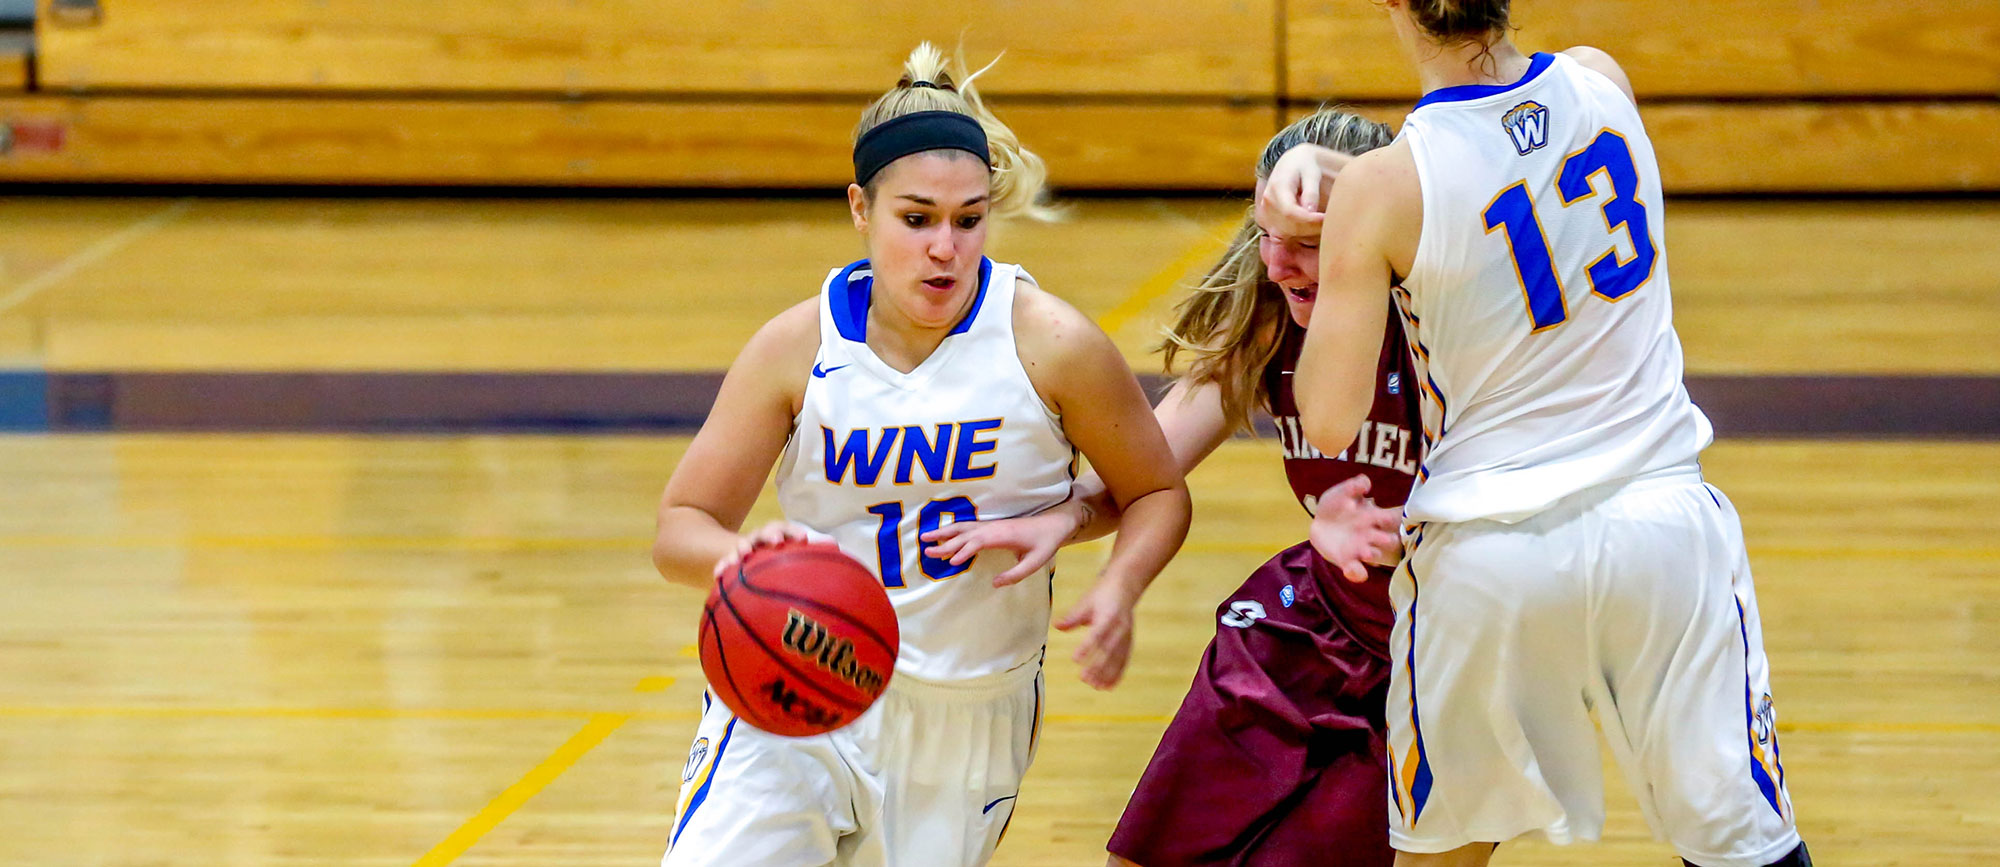 Western New England Opens CCC Play with 57-52 Win at Salve Regina